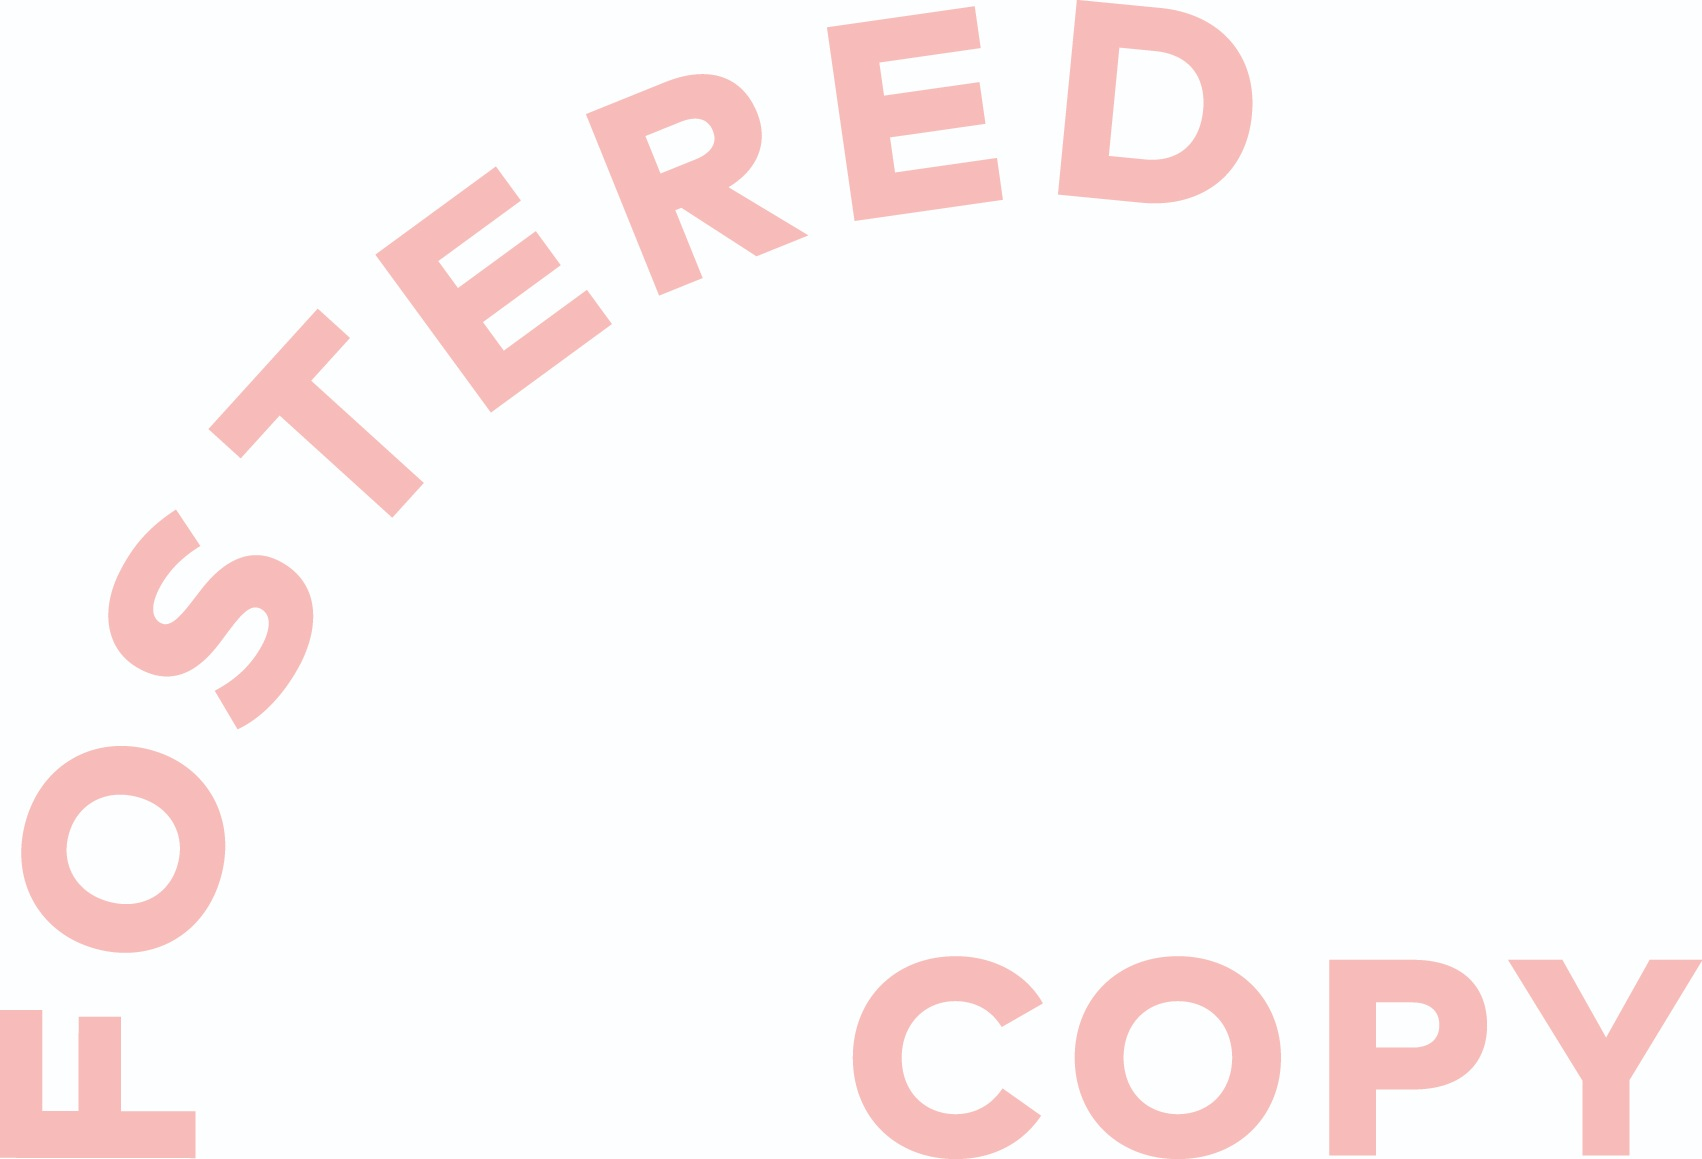 Fostered Copy Freelance Copywriter